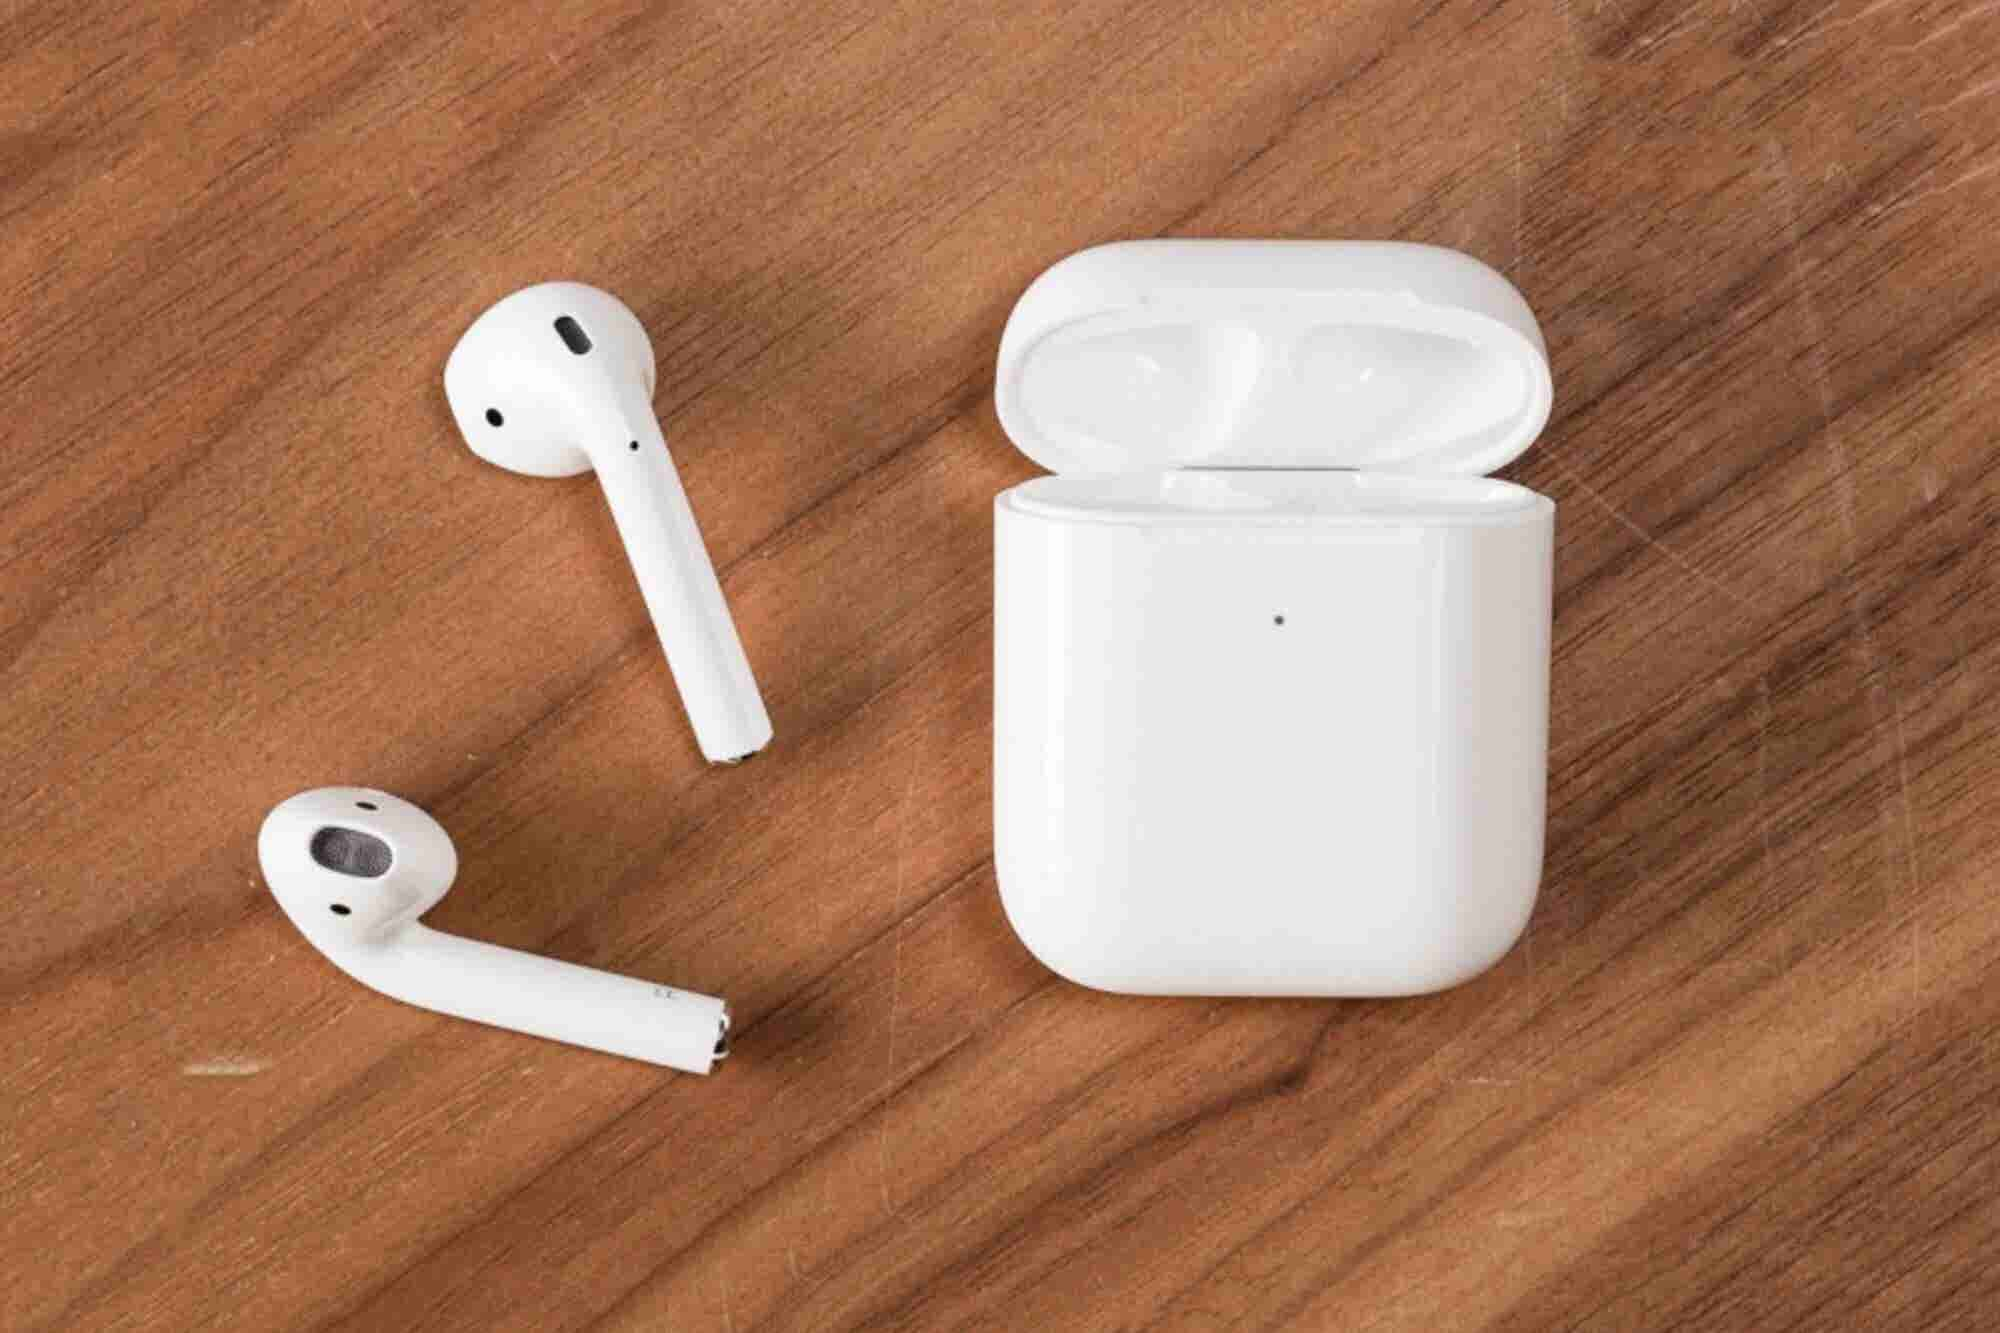 Swallowed AirPod Still Works After...Retrieval